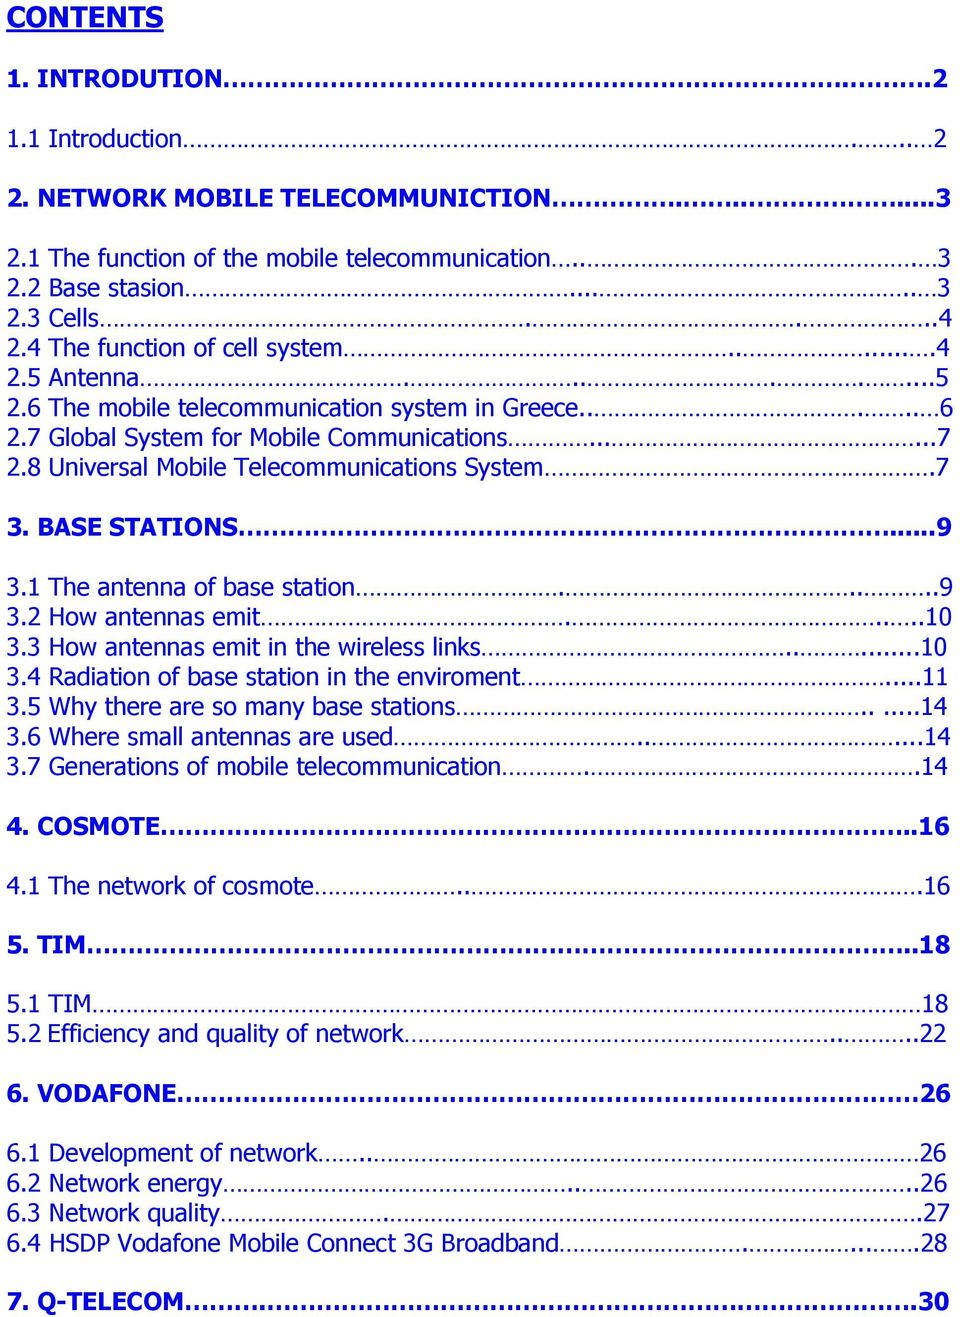 8 Universal Mobile Telecommunications System.7 3. BASE STATIONS....9 3.1 The antenna of base station.....9 3.2 How antennas emit.....10 3.3 How antennas emit in the wireless links.....10 3.4 Radiation of base station in the enviroment.